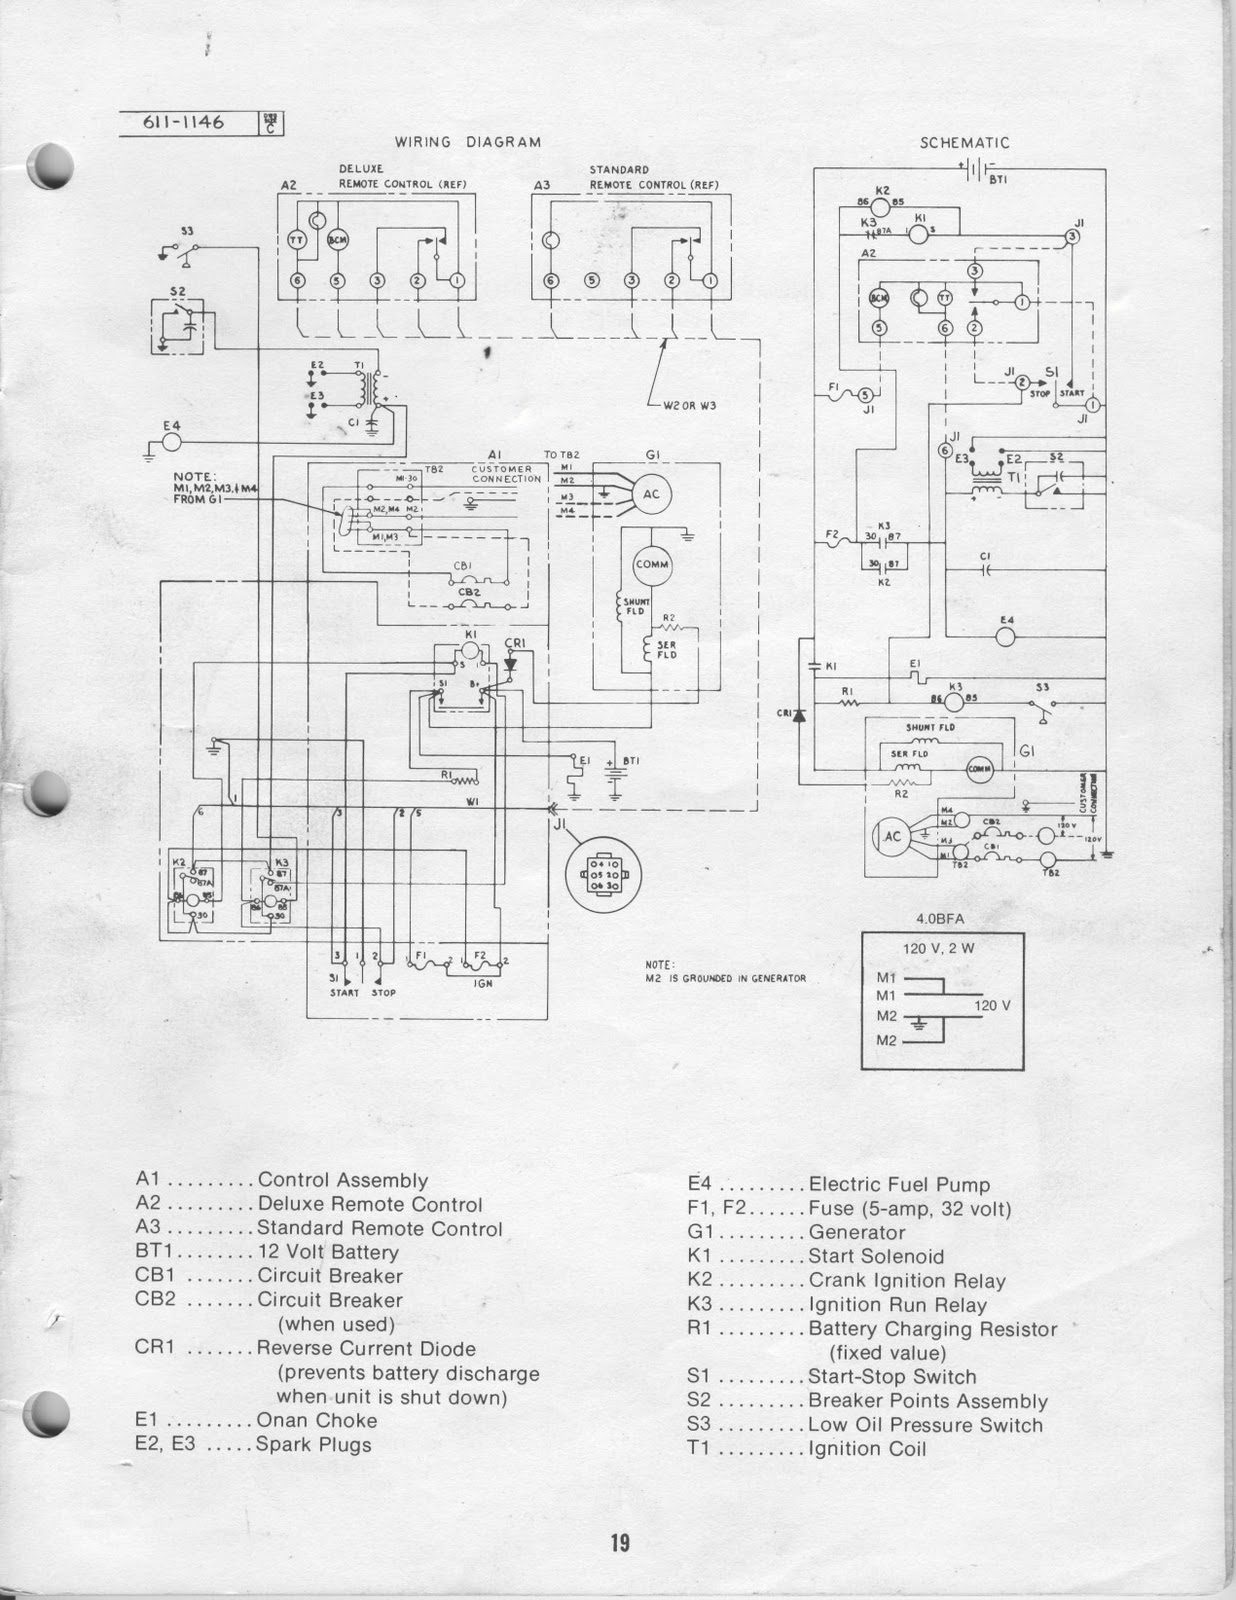 rv schematic wiring diagram 1983 fleetwood pace arrow owners manuals: onan 4.0 kw bfa ... #7